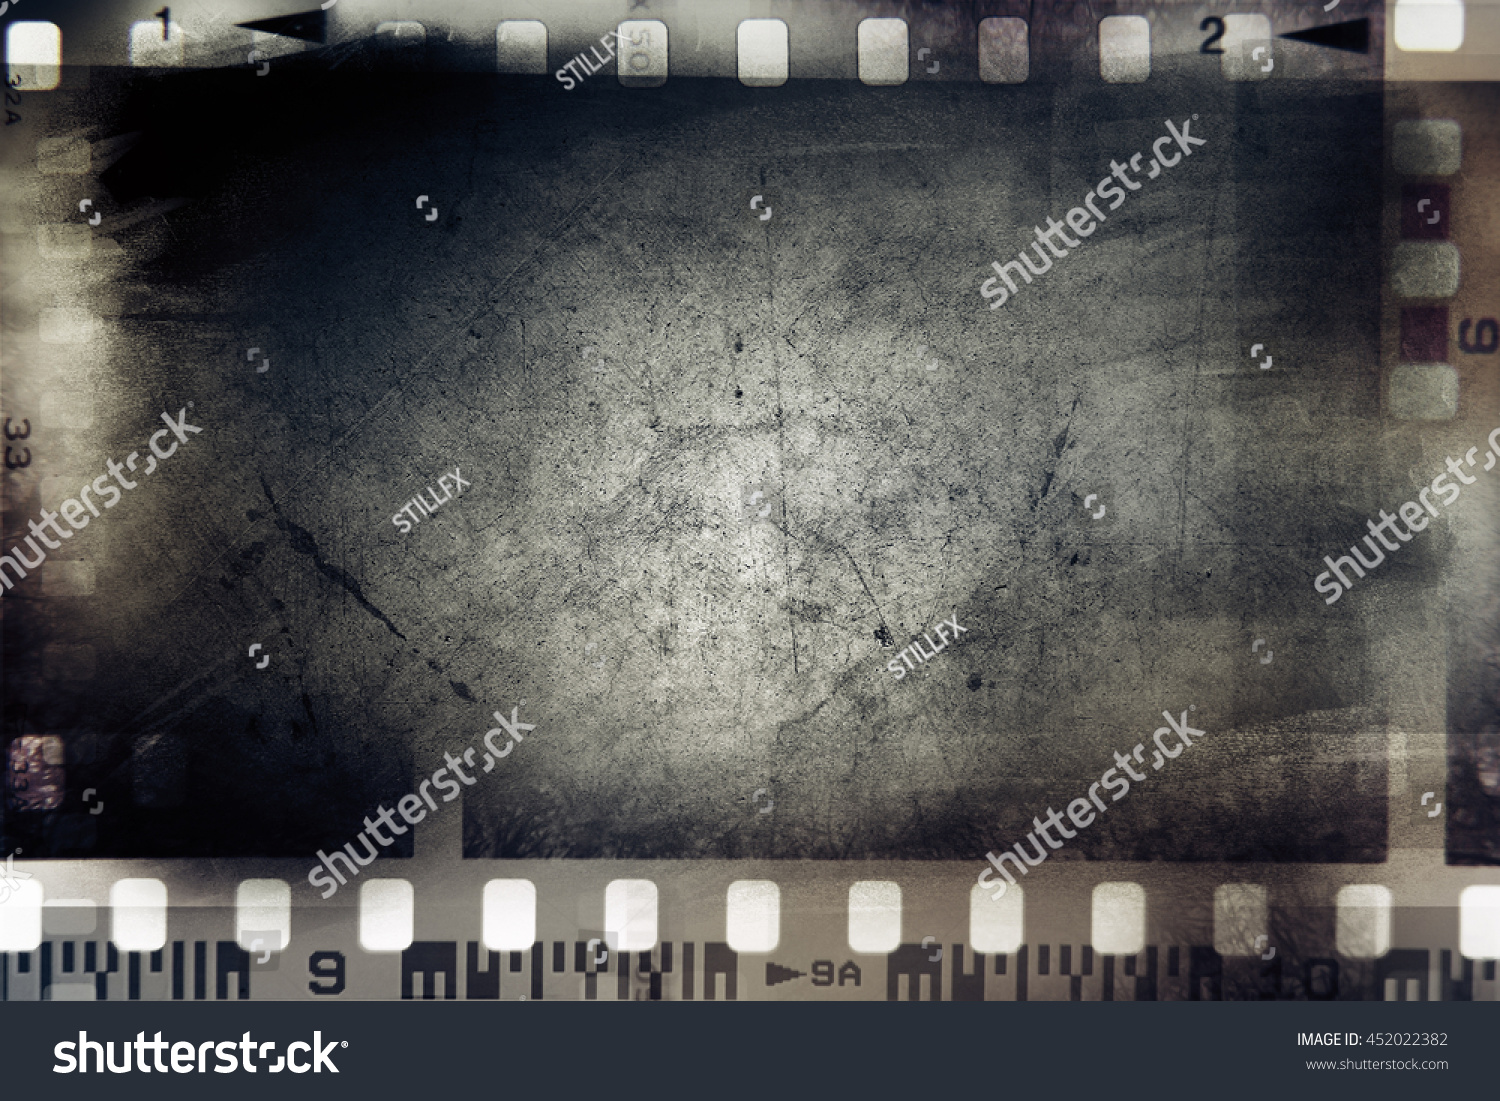 Film Negative Frames On Grunge Background Stock Photo ...